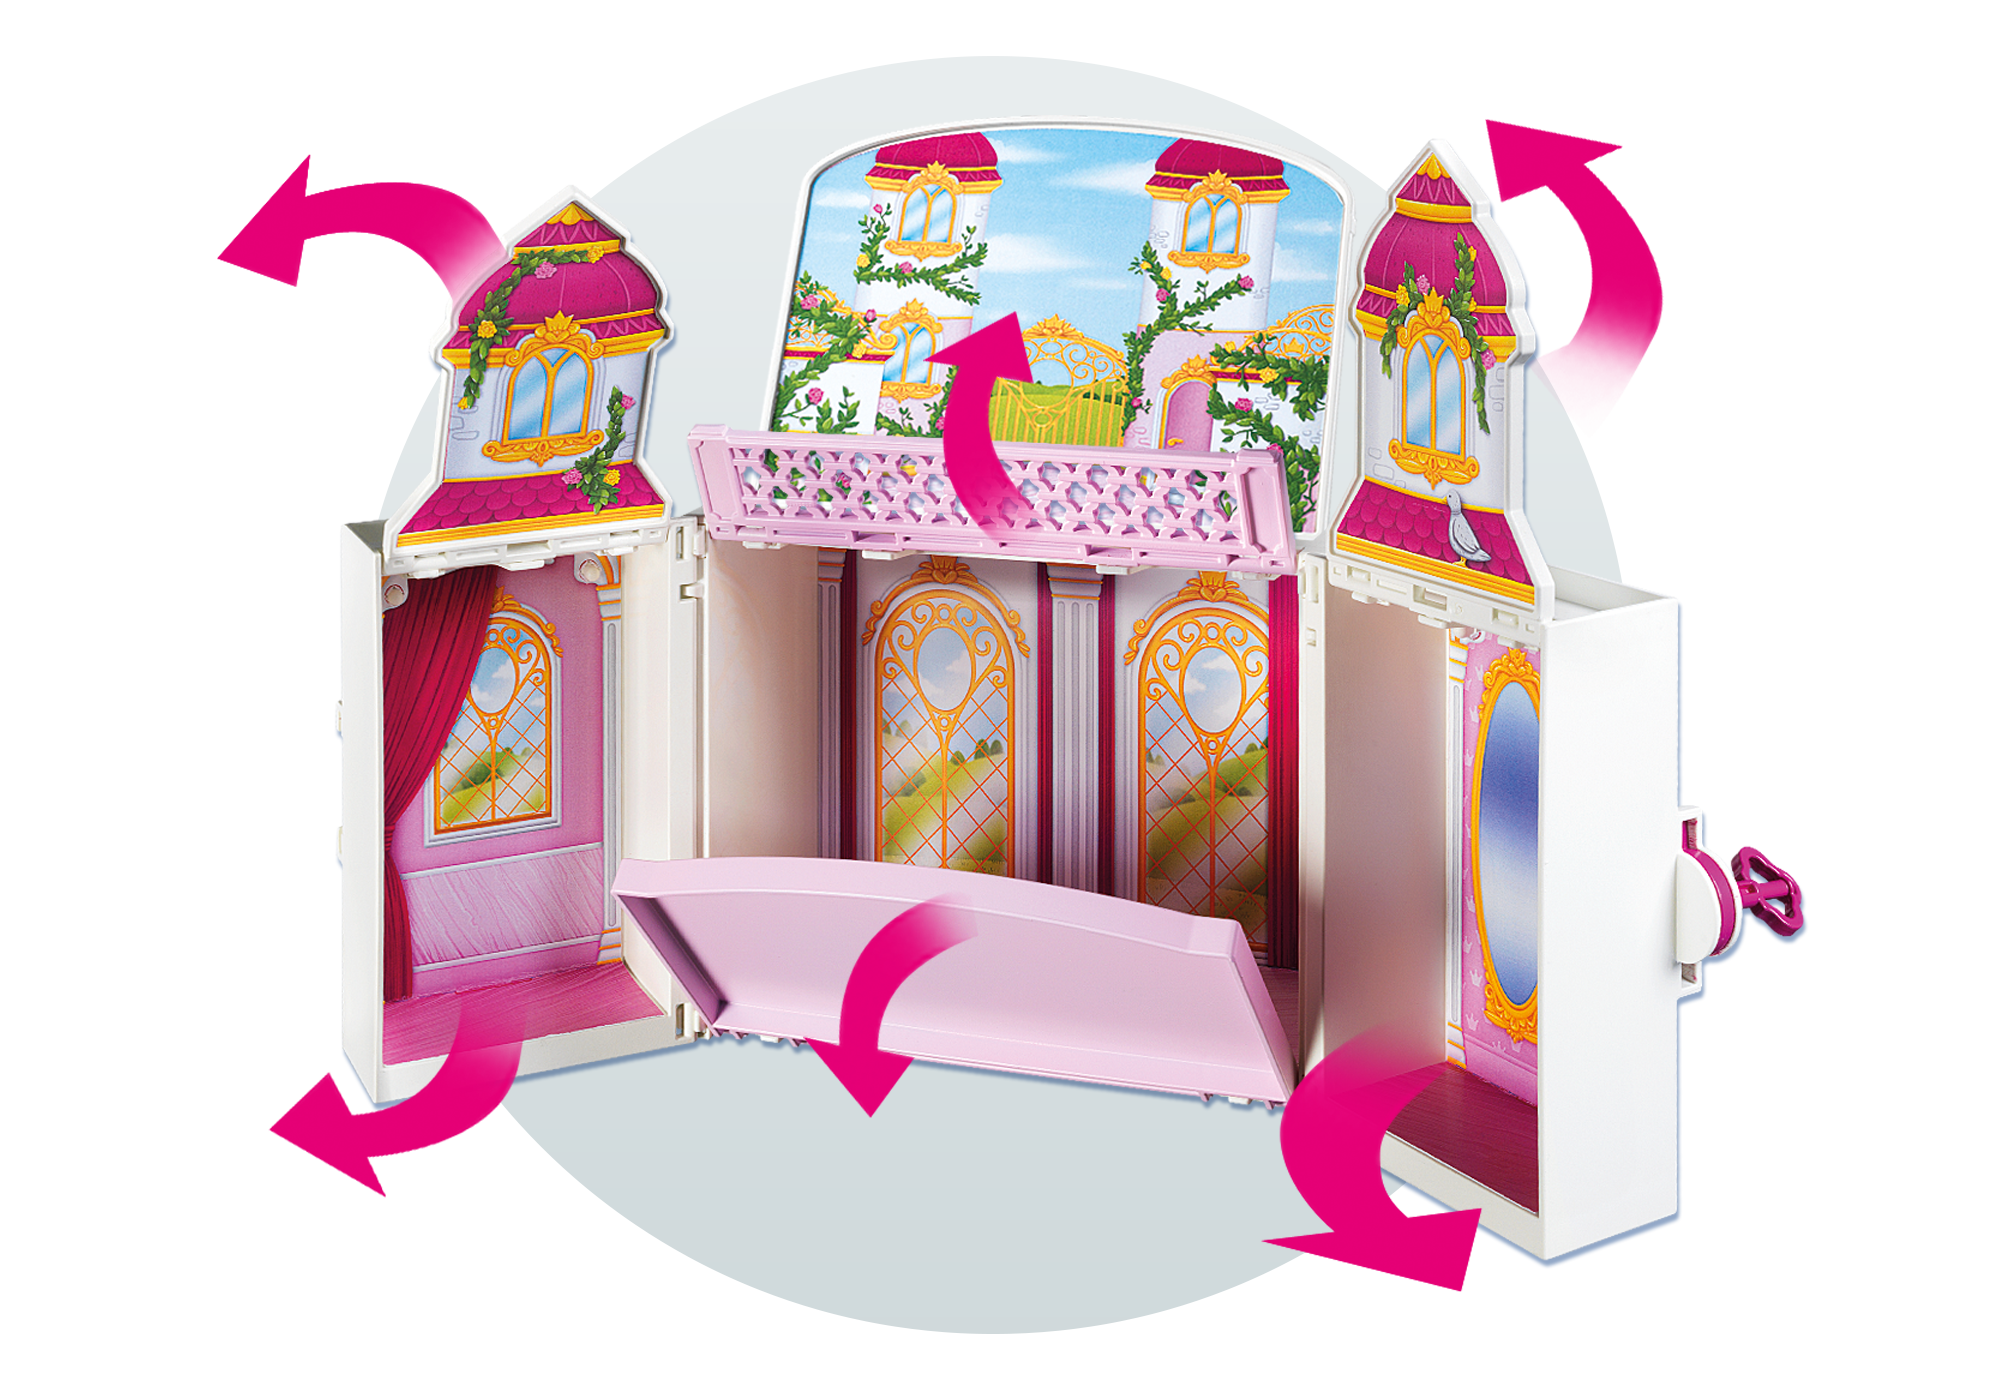 http://media.playmobil.com/i/playmobil/4898_product_extra2